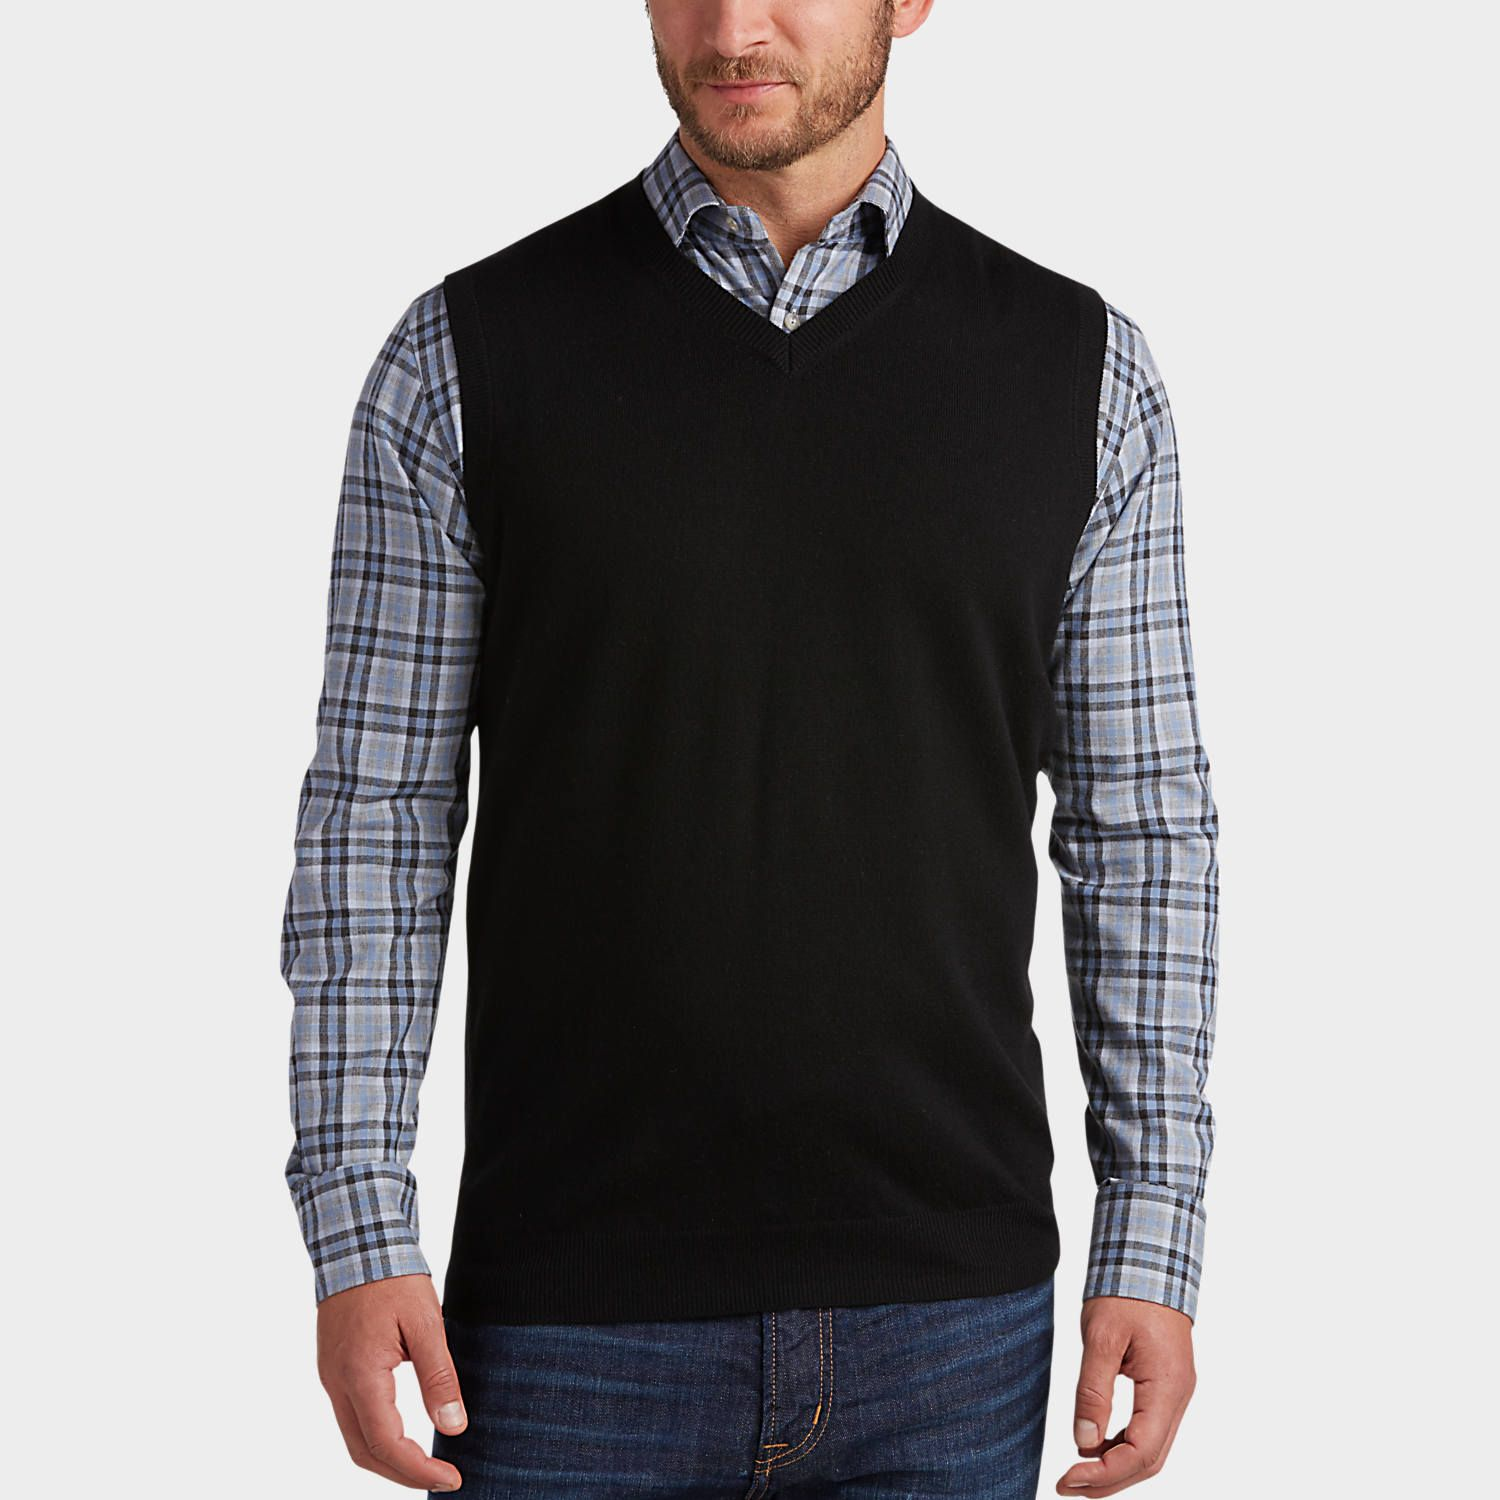 Buy a Joseph Abboud Black V-Neck Modern Fit Sweater Vest and other ...